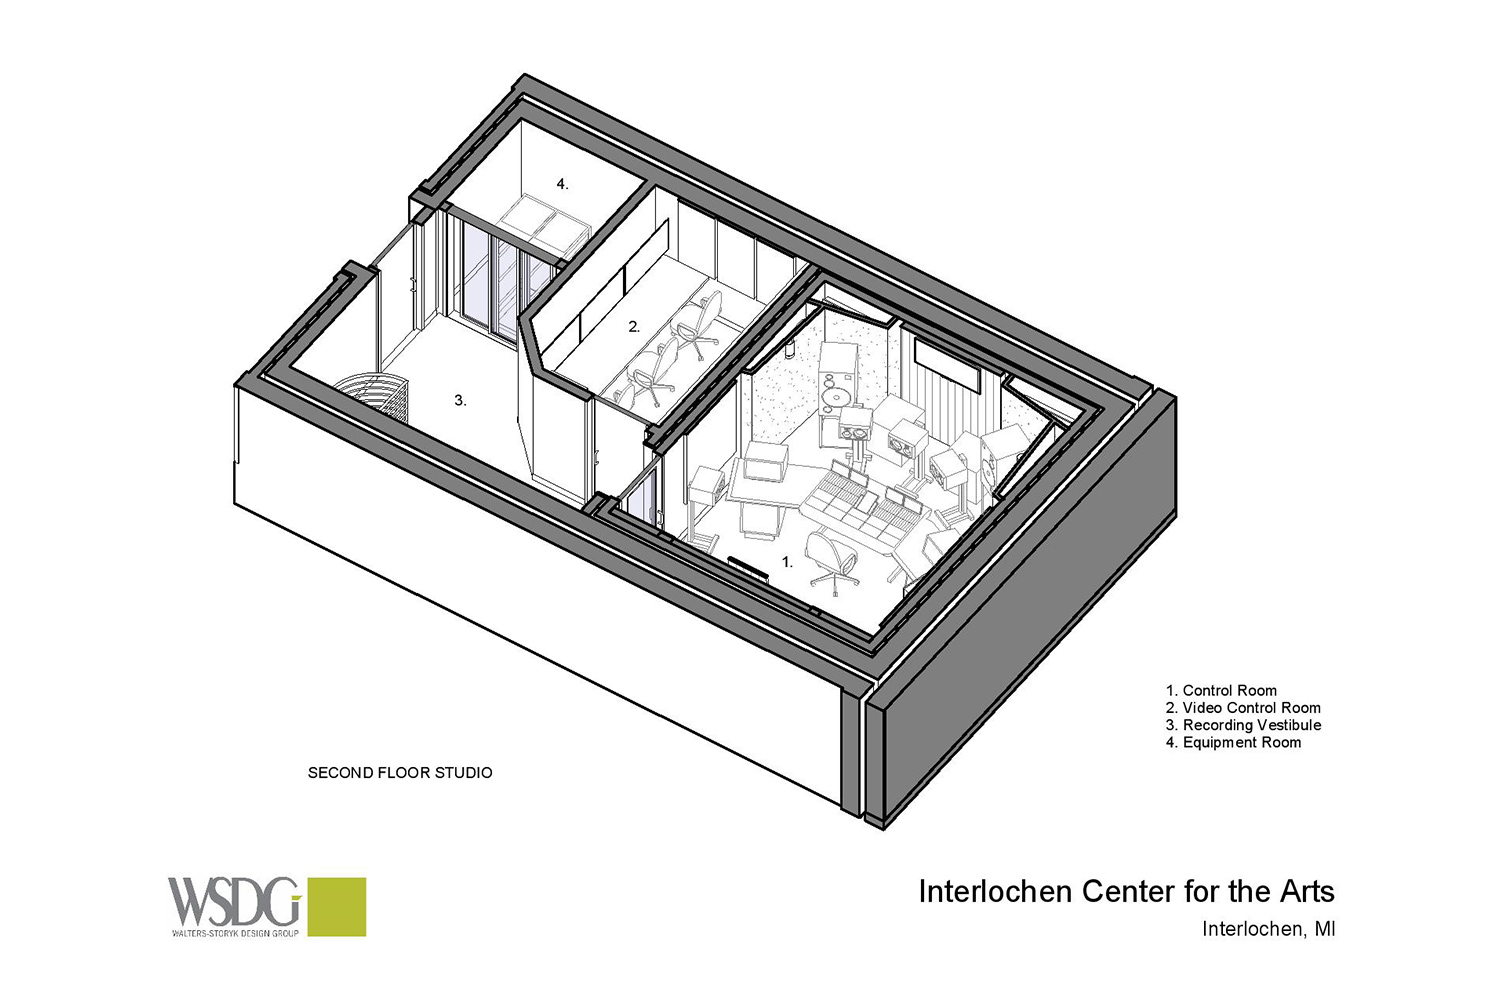 Interlochen has recently completed their new complex. A key component of the new complex is a state-of-the-art recording/teaching studio complex developed by WSDG. Presentation drawing 2, second floor axonometric view.